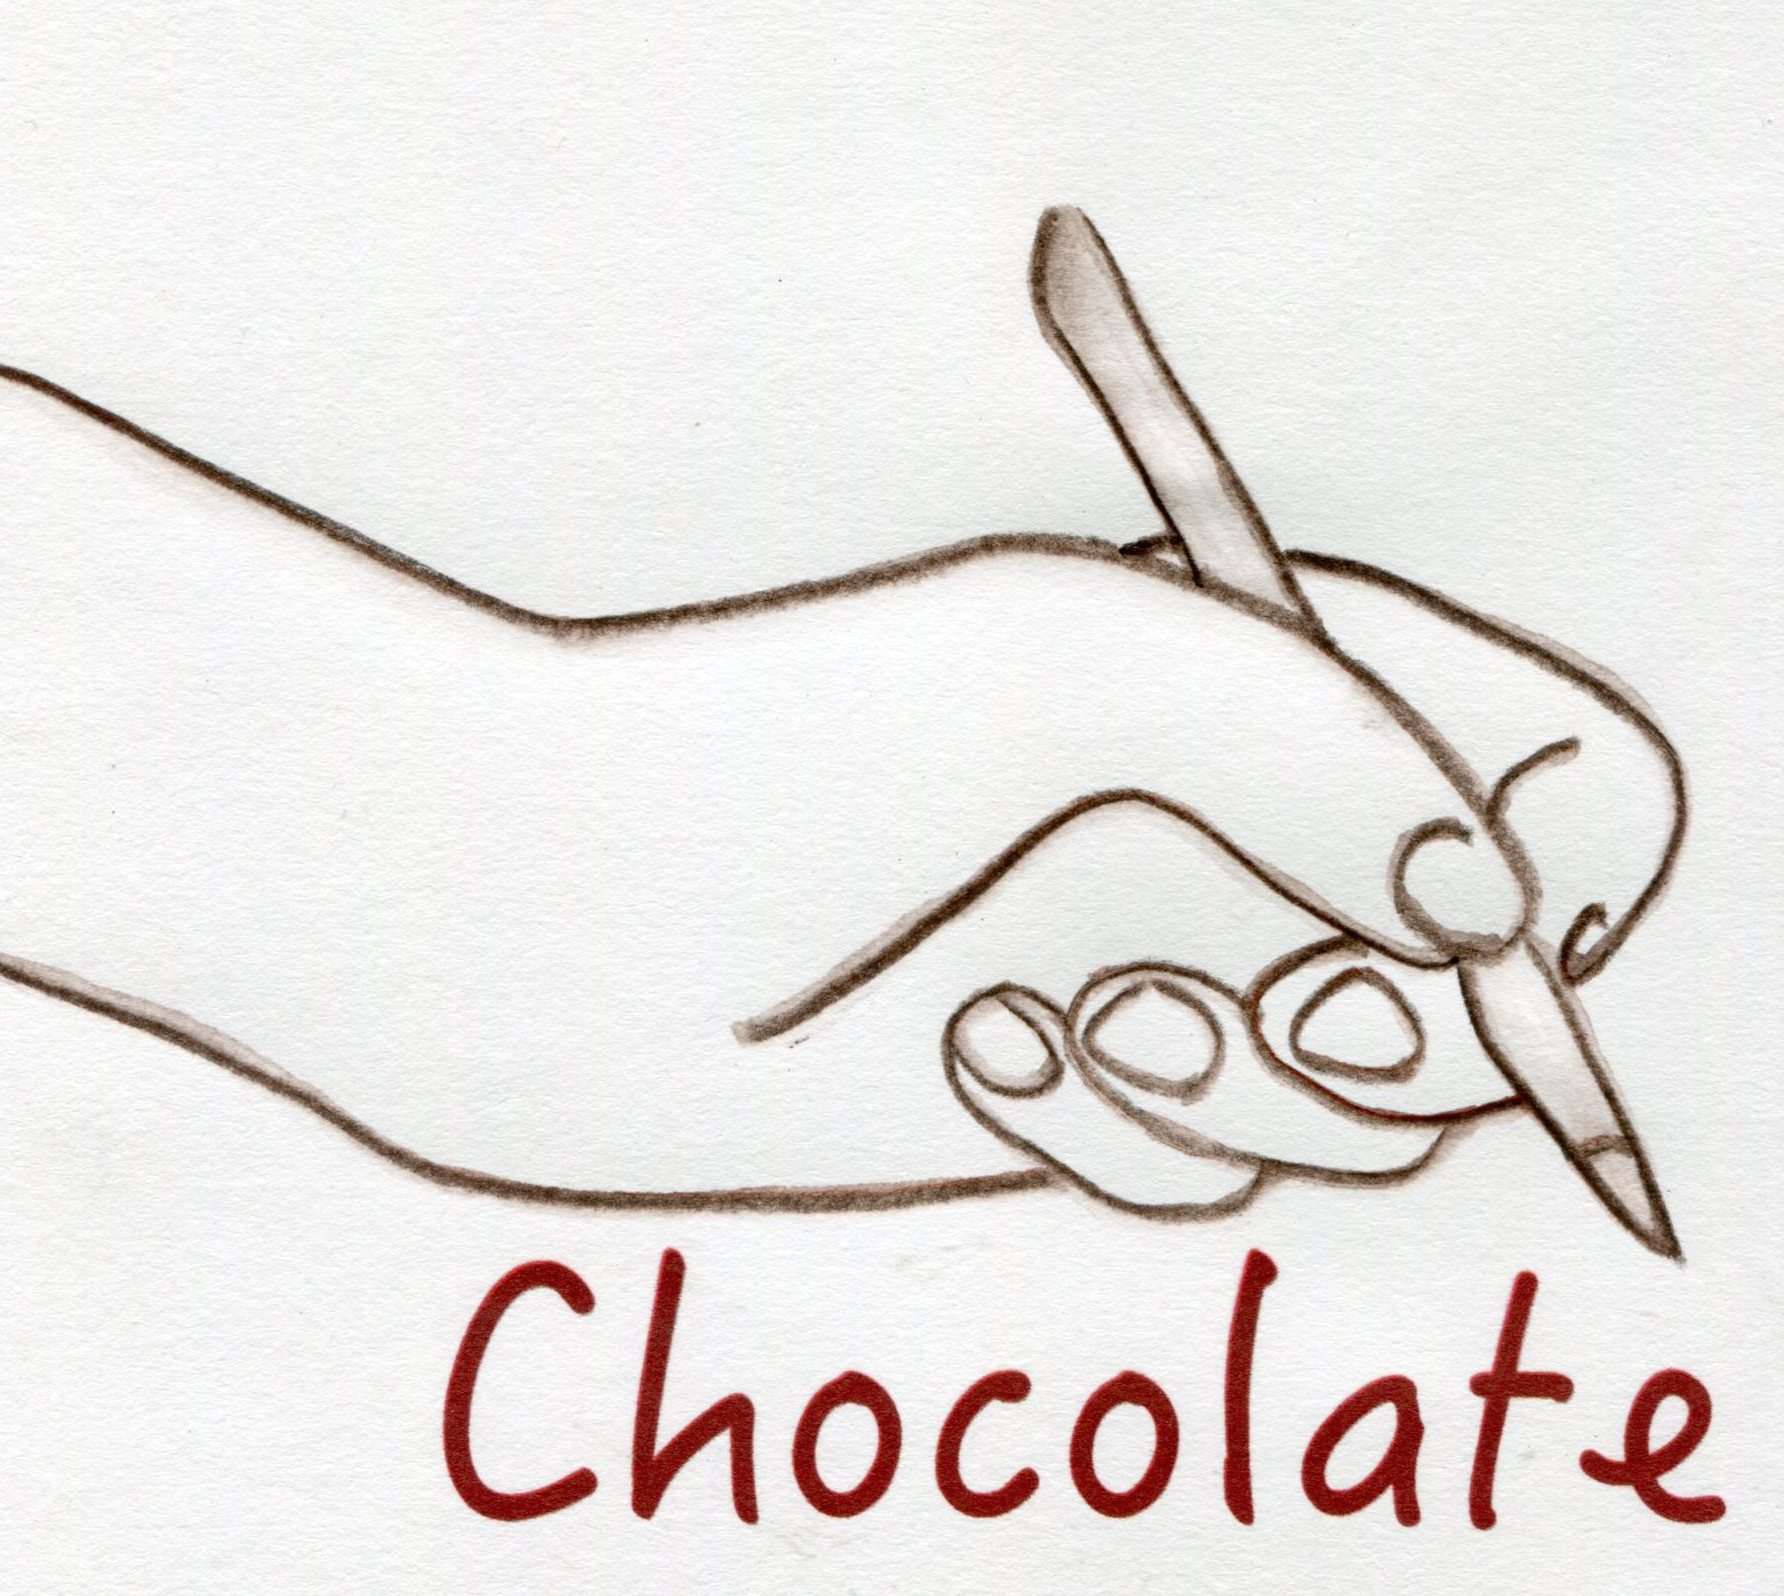 Chocolate image, cropped.jpg